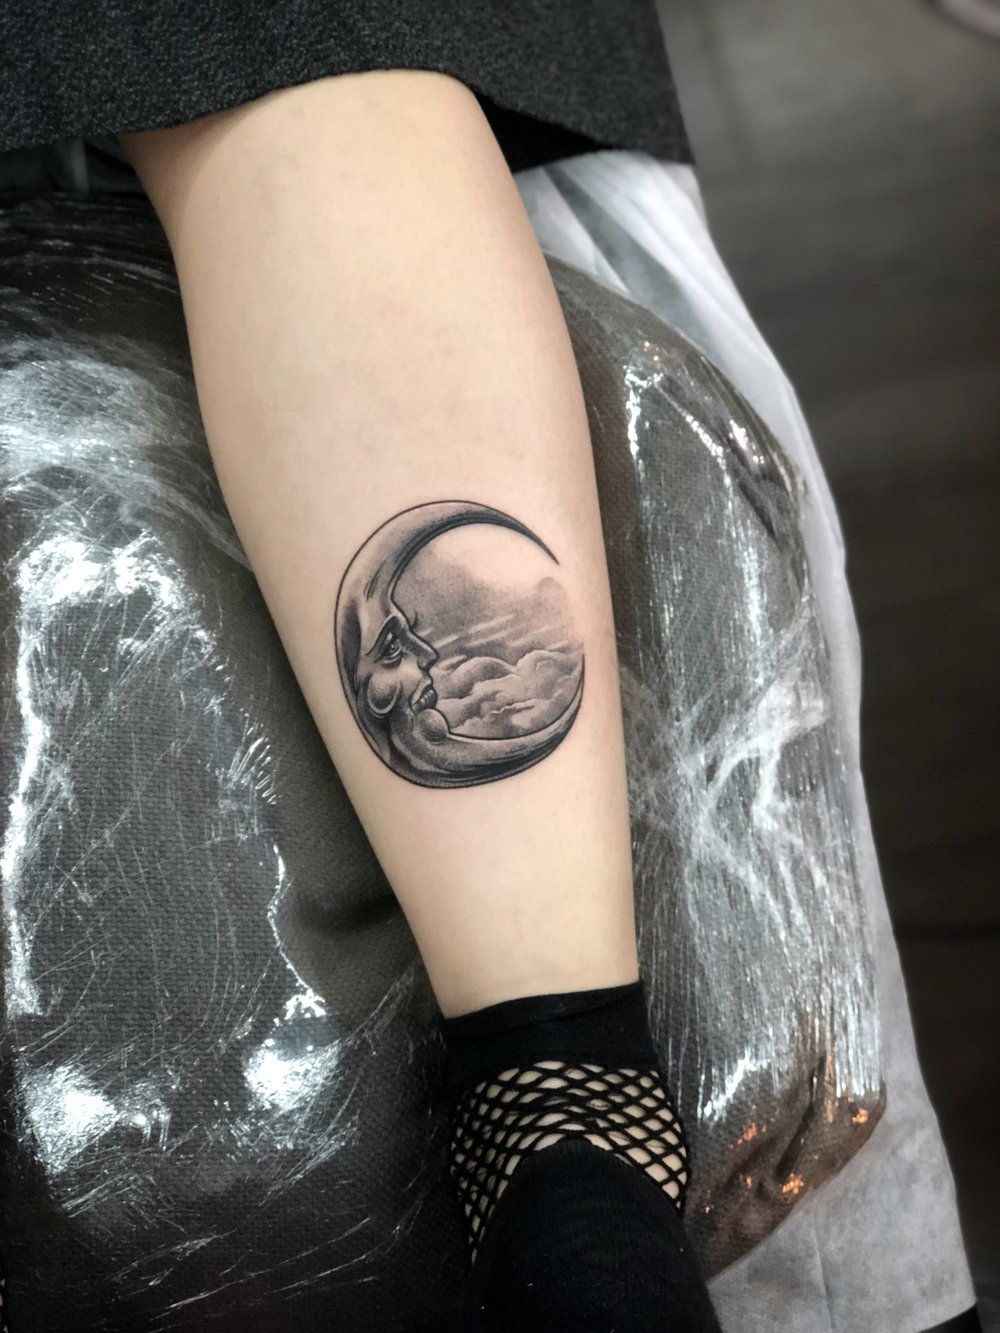 2018-fridays-tattoo-hong-kong-felix-moon-illustration.jpg